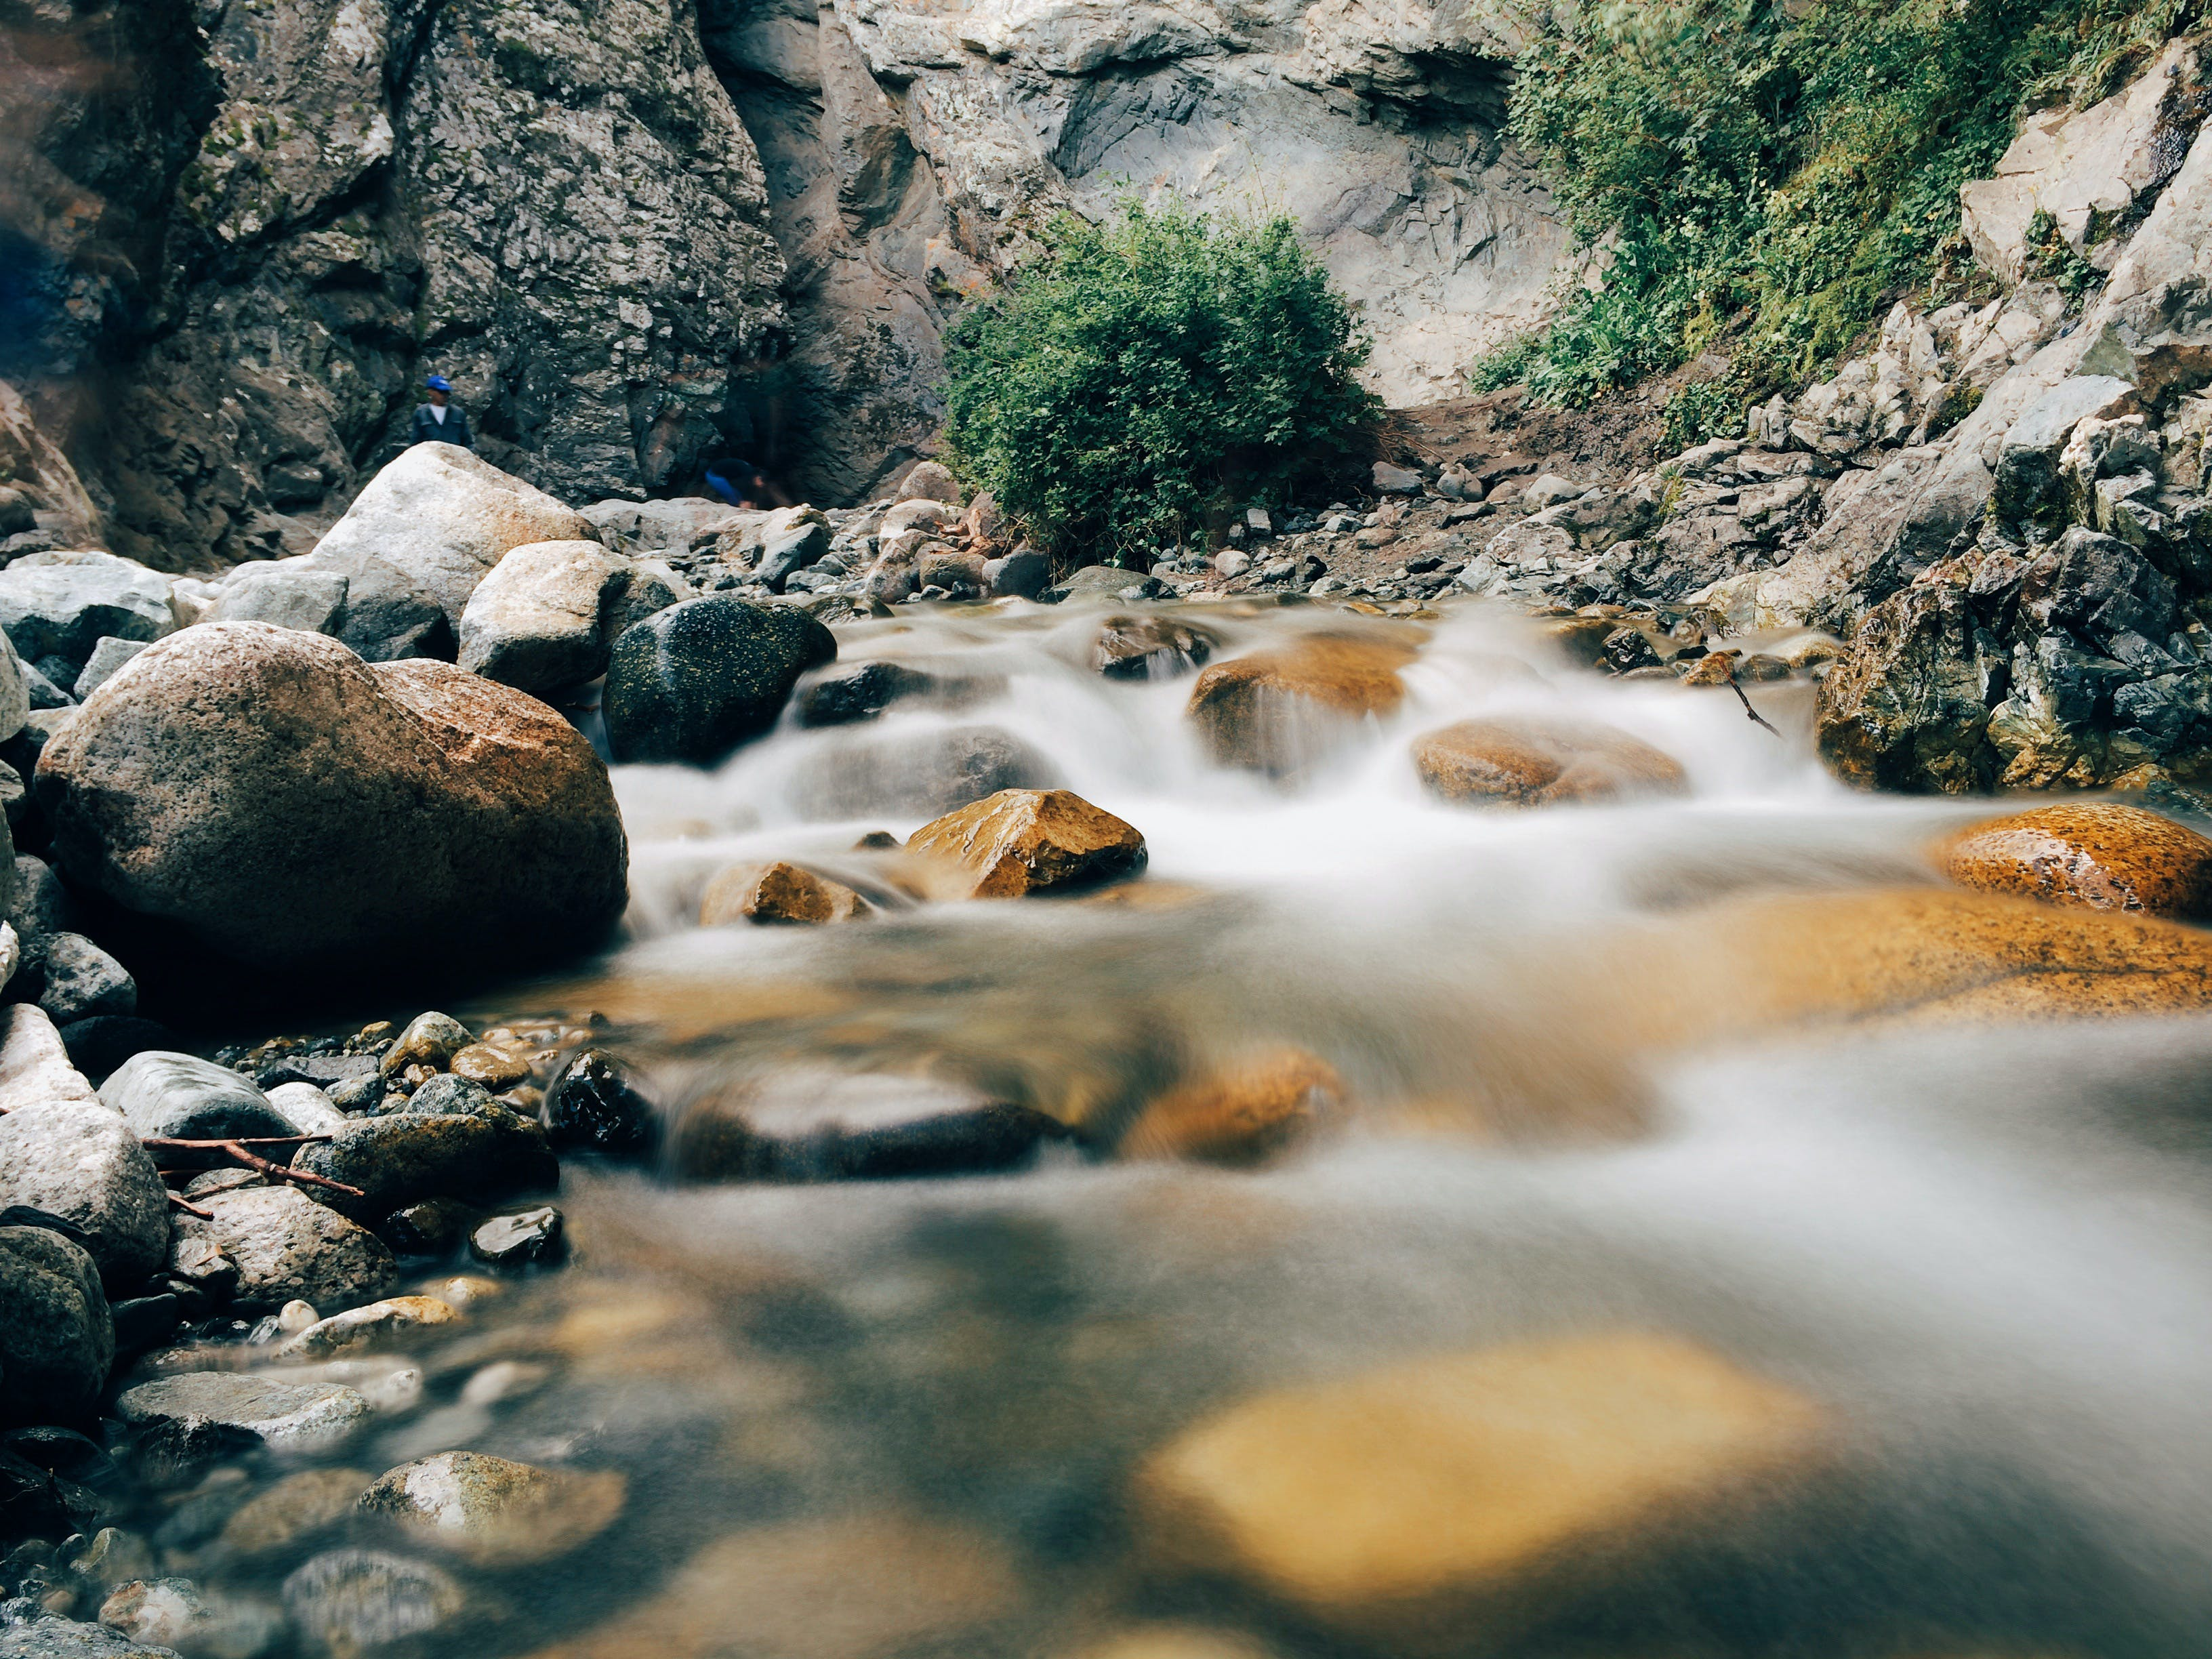 Free stock photo of landscape, nature, rocks, creek